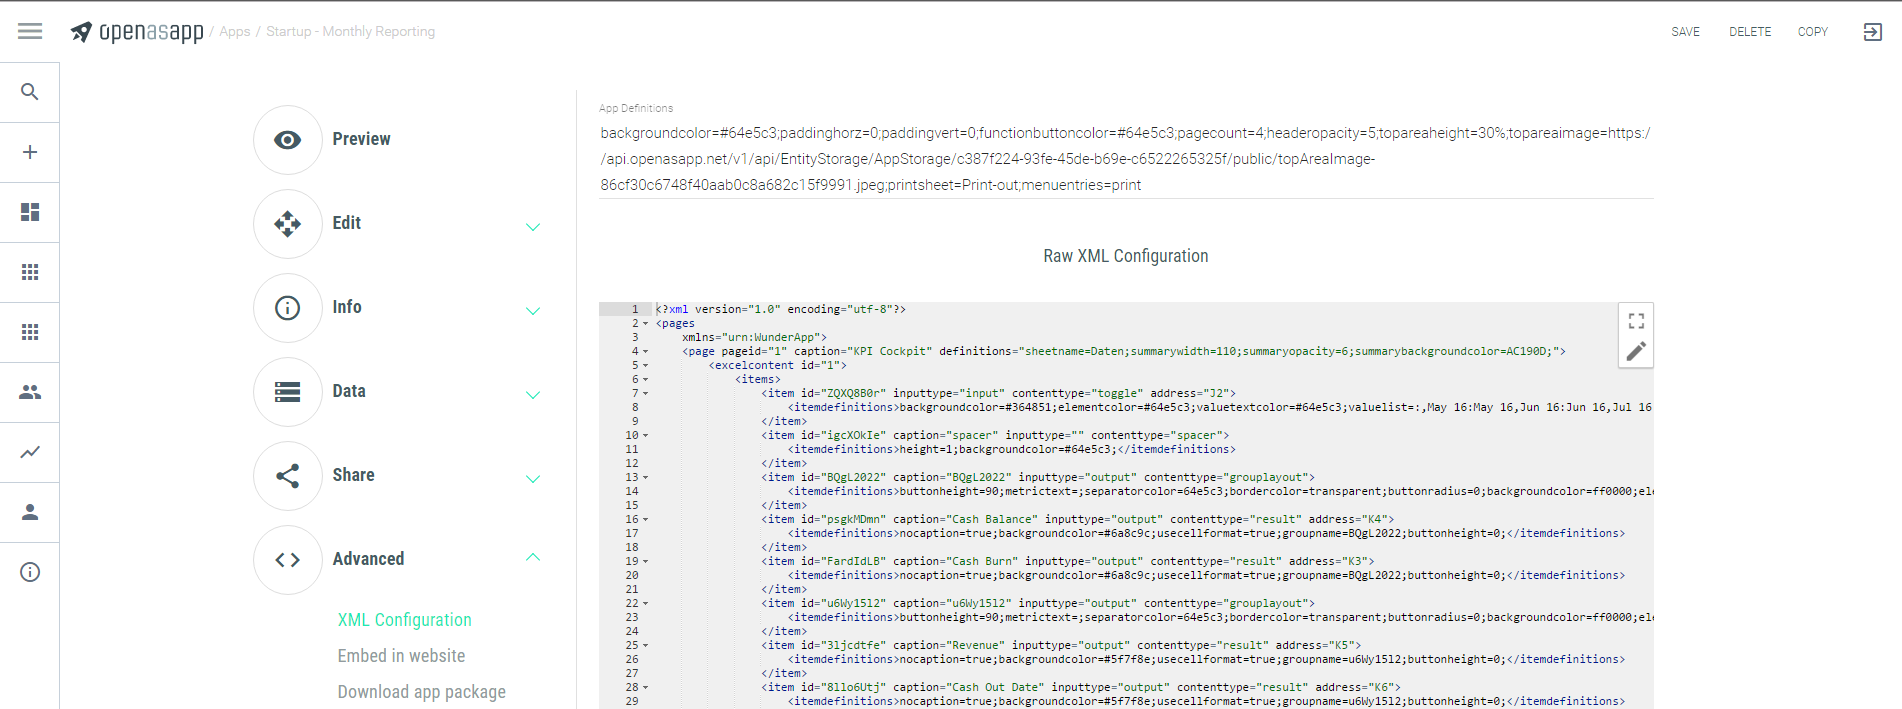 Raw XML Configuration